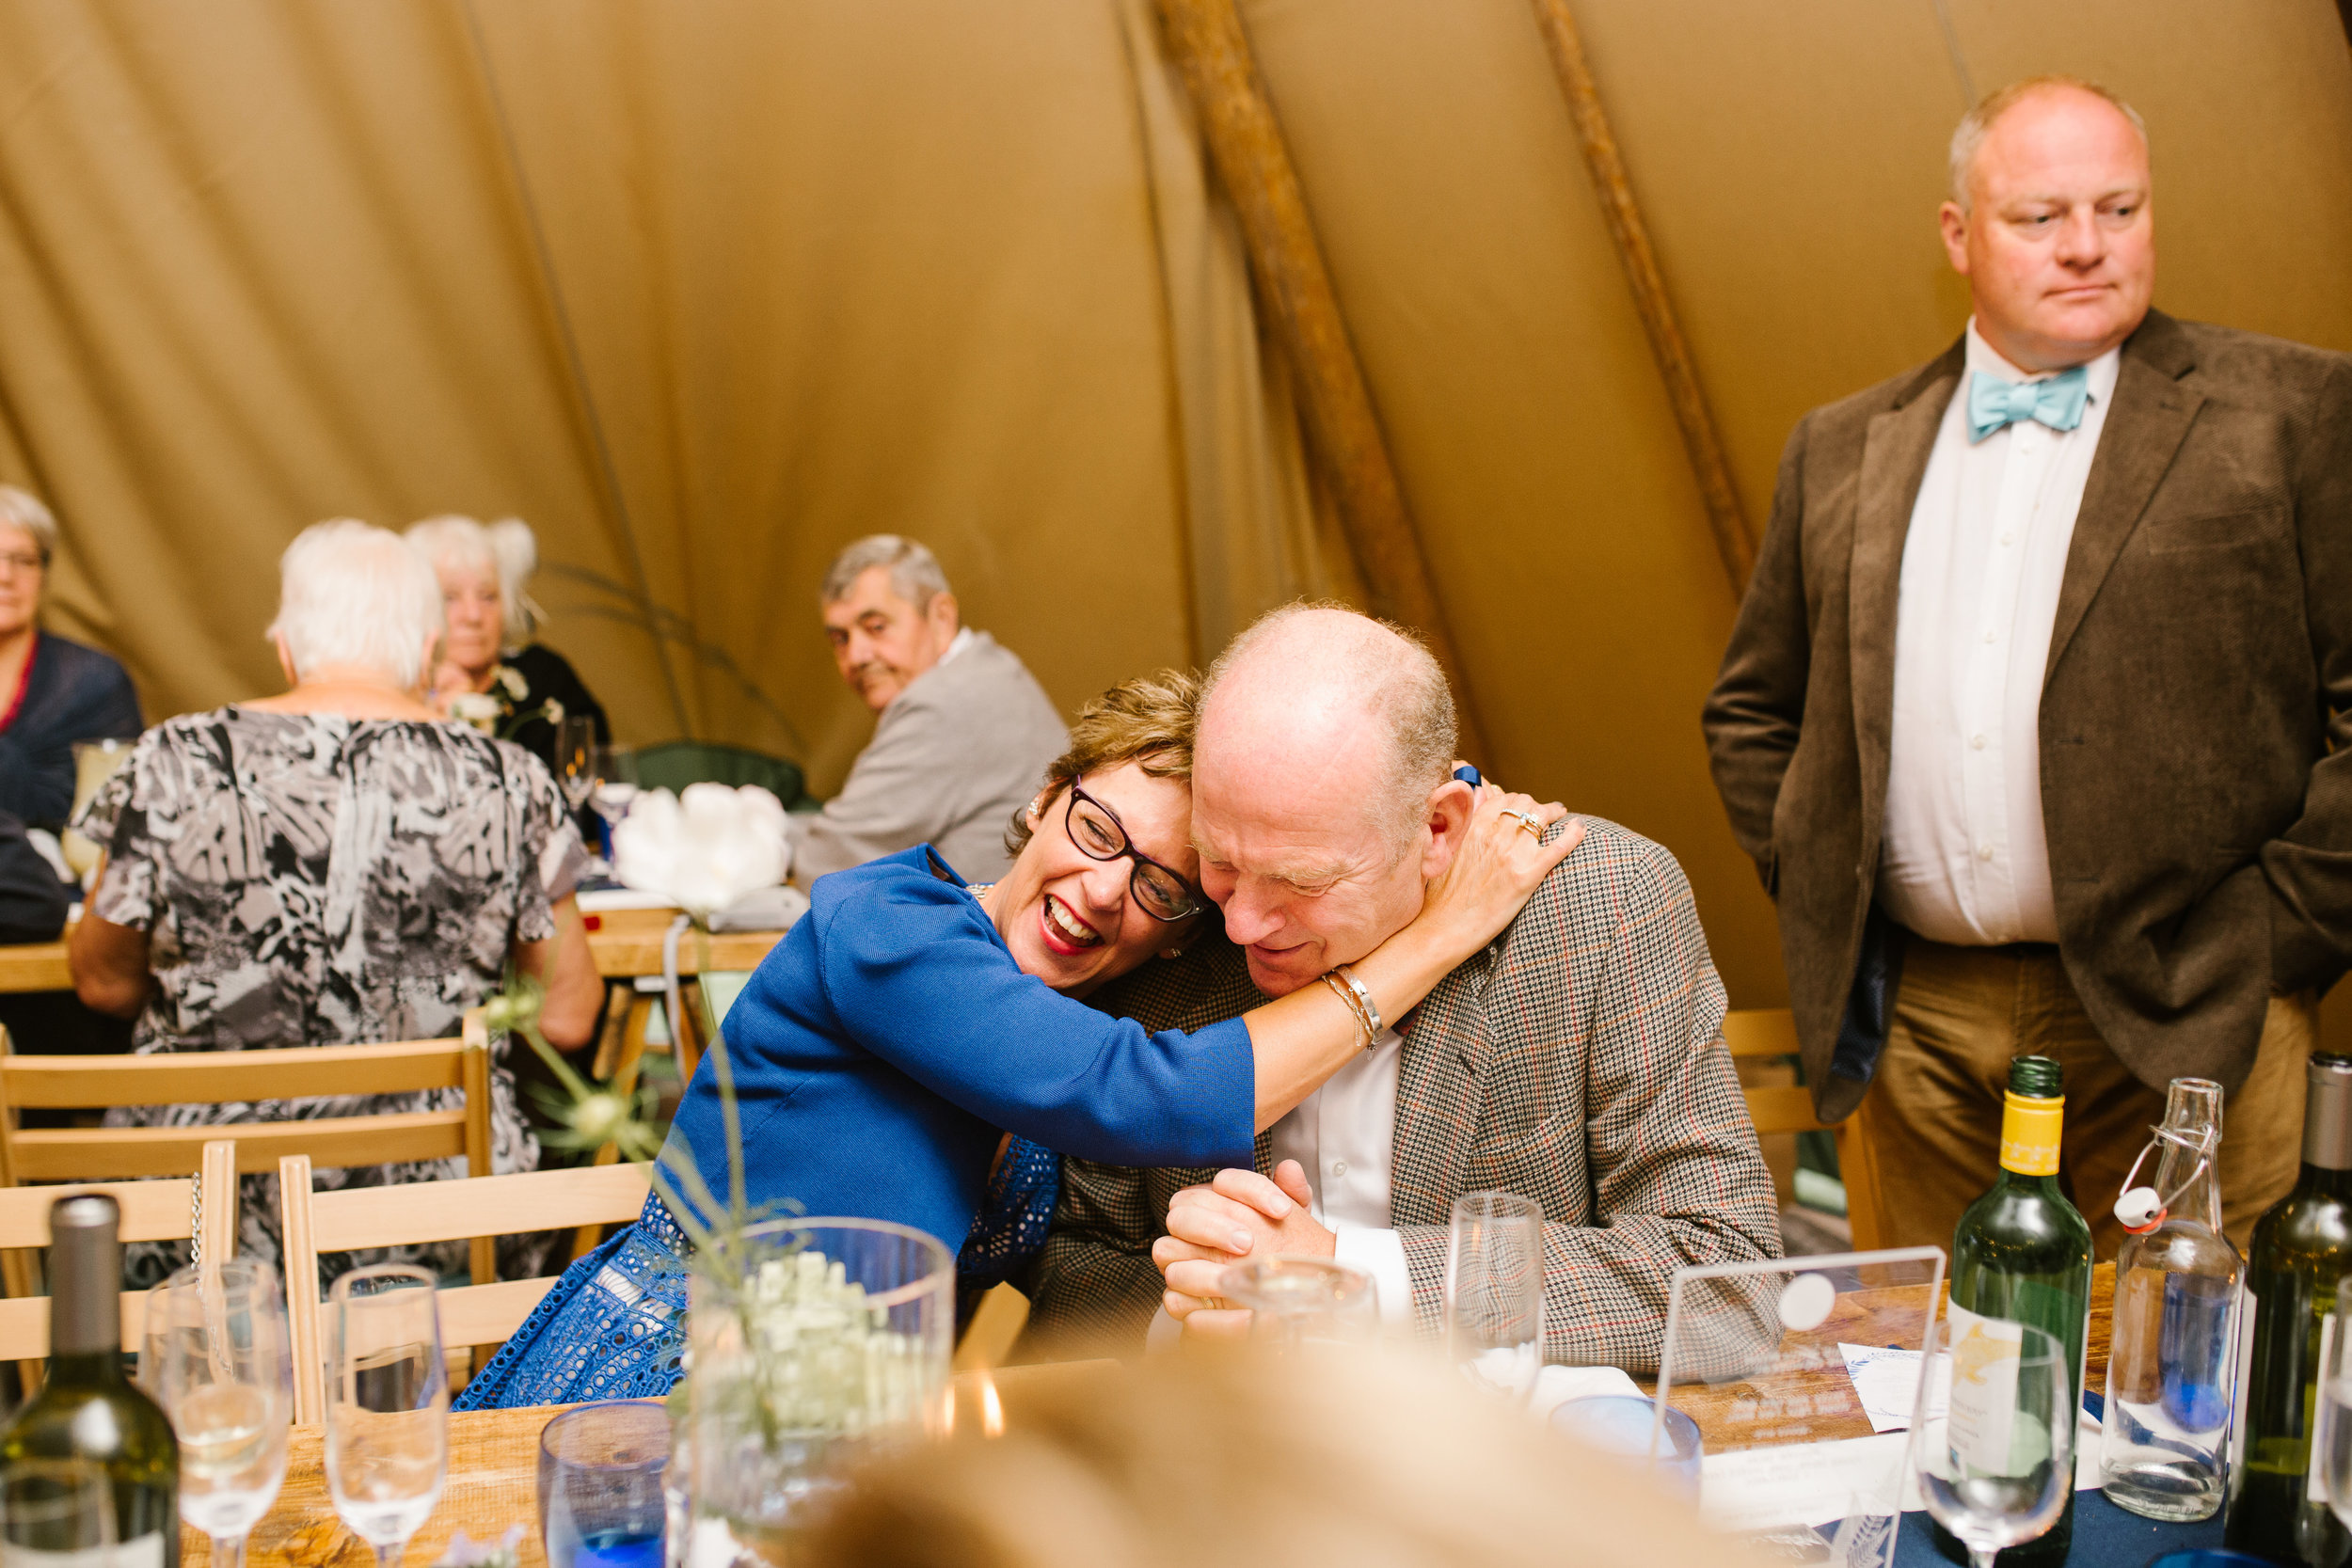 natural photo of wedding guests hugging one another during the wedding speeches